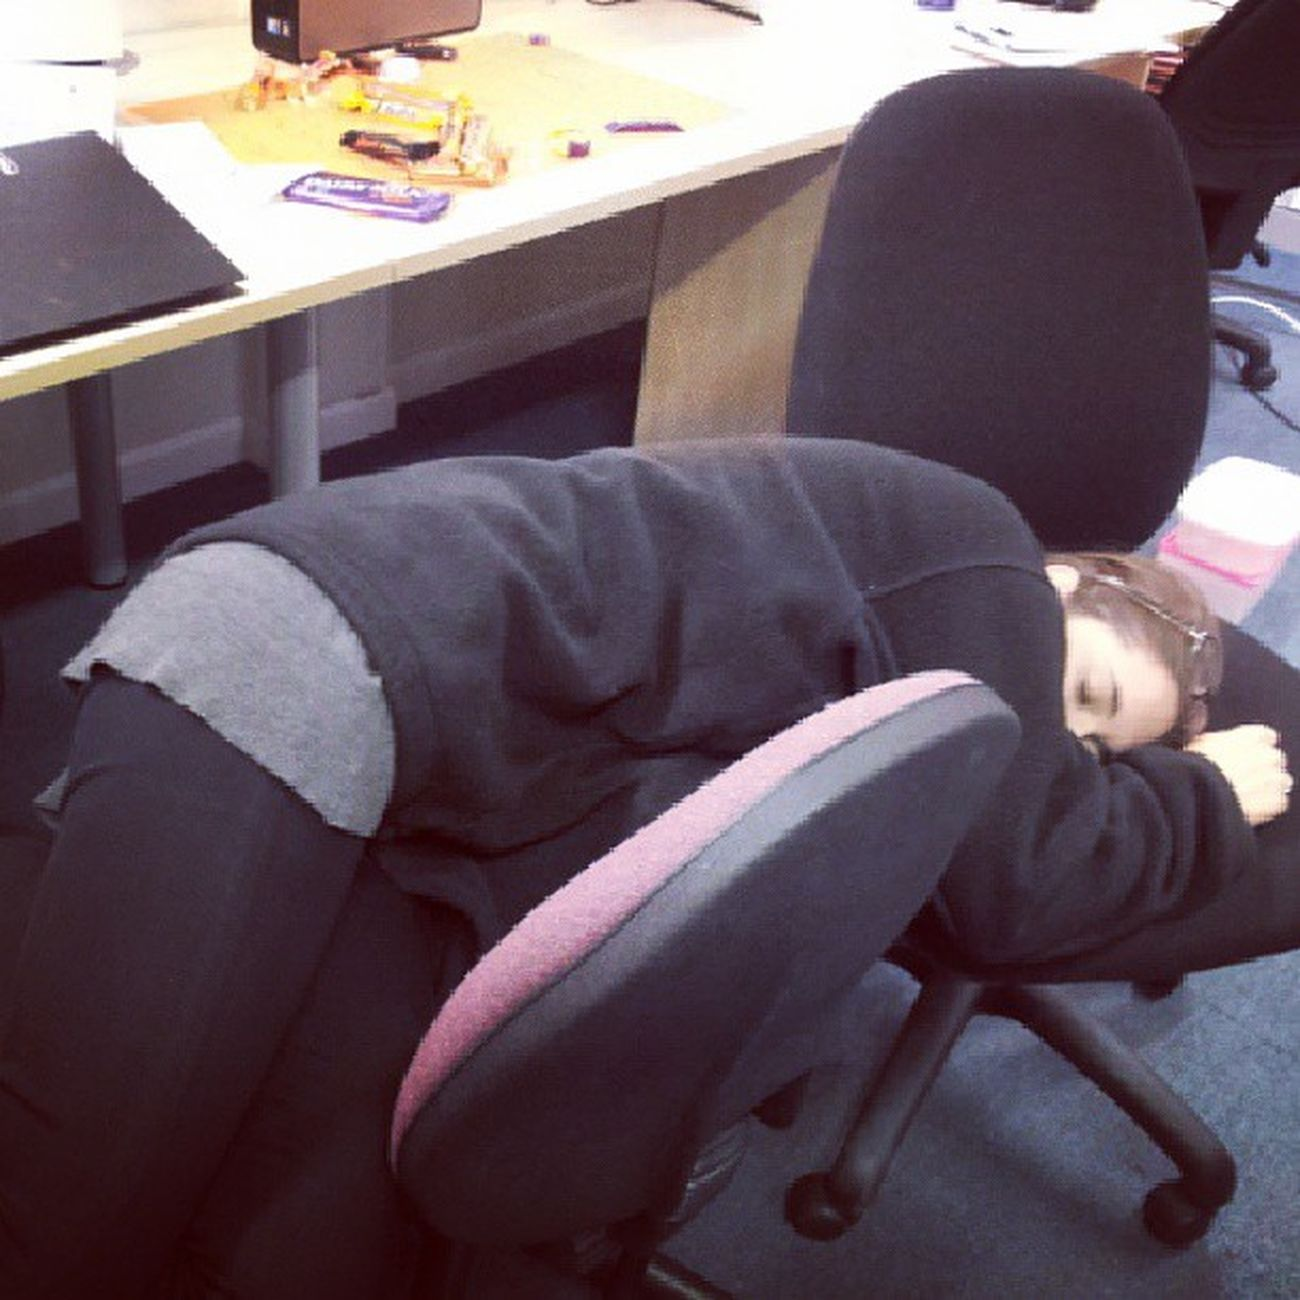 Work is clearly taking its toll...Sleeptime Soulsucking Boohoo